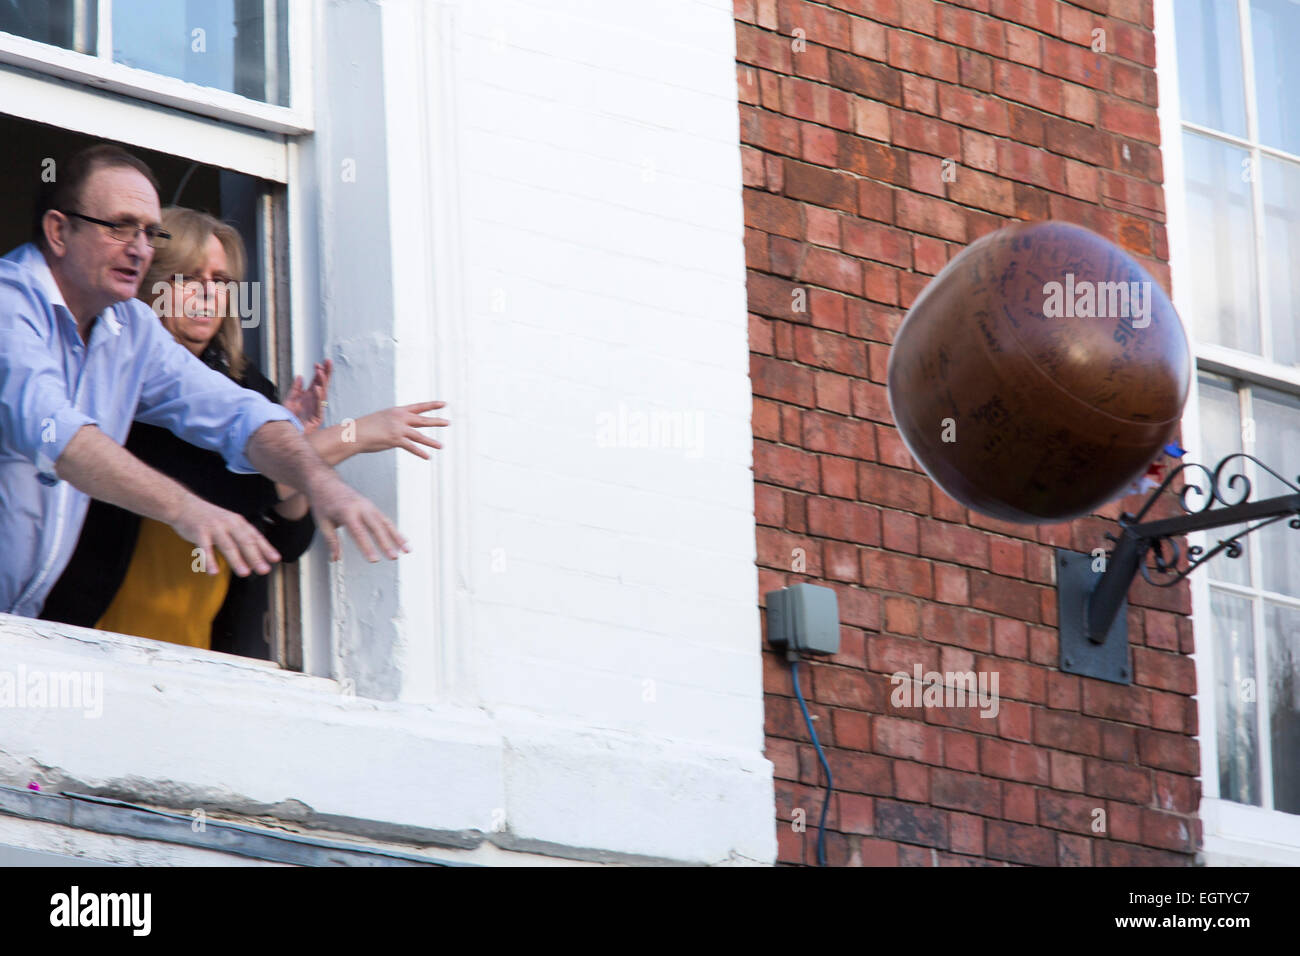 Atherstone Ball Game. Two teams kick a leather ball up and down Long Street, Atherstone. The ball is thrown out - Stock Image